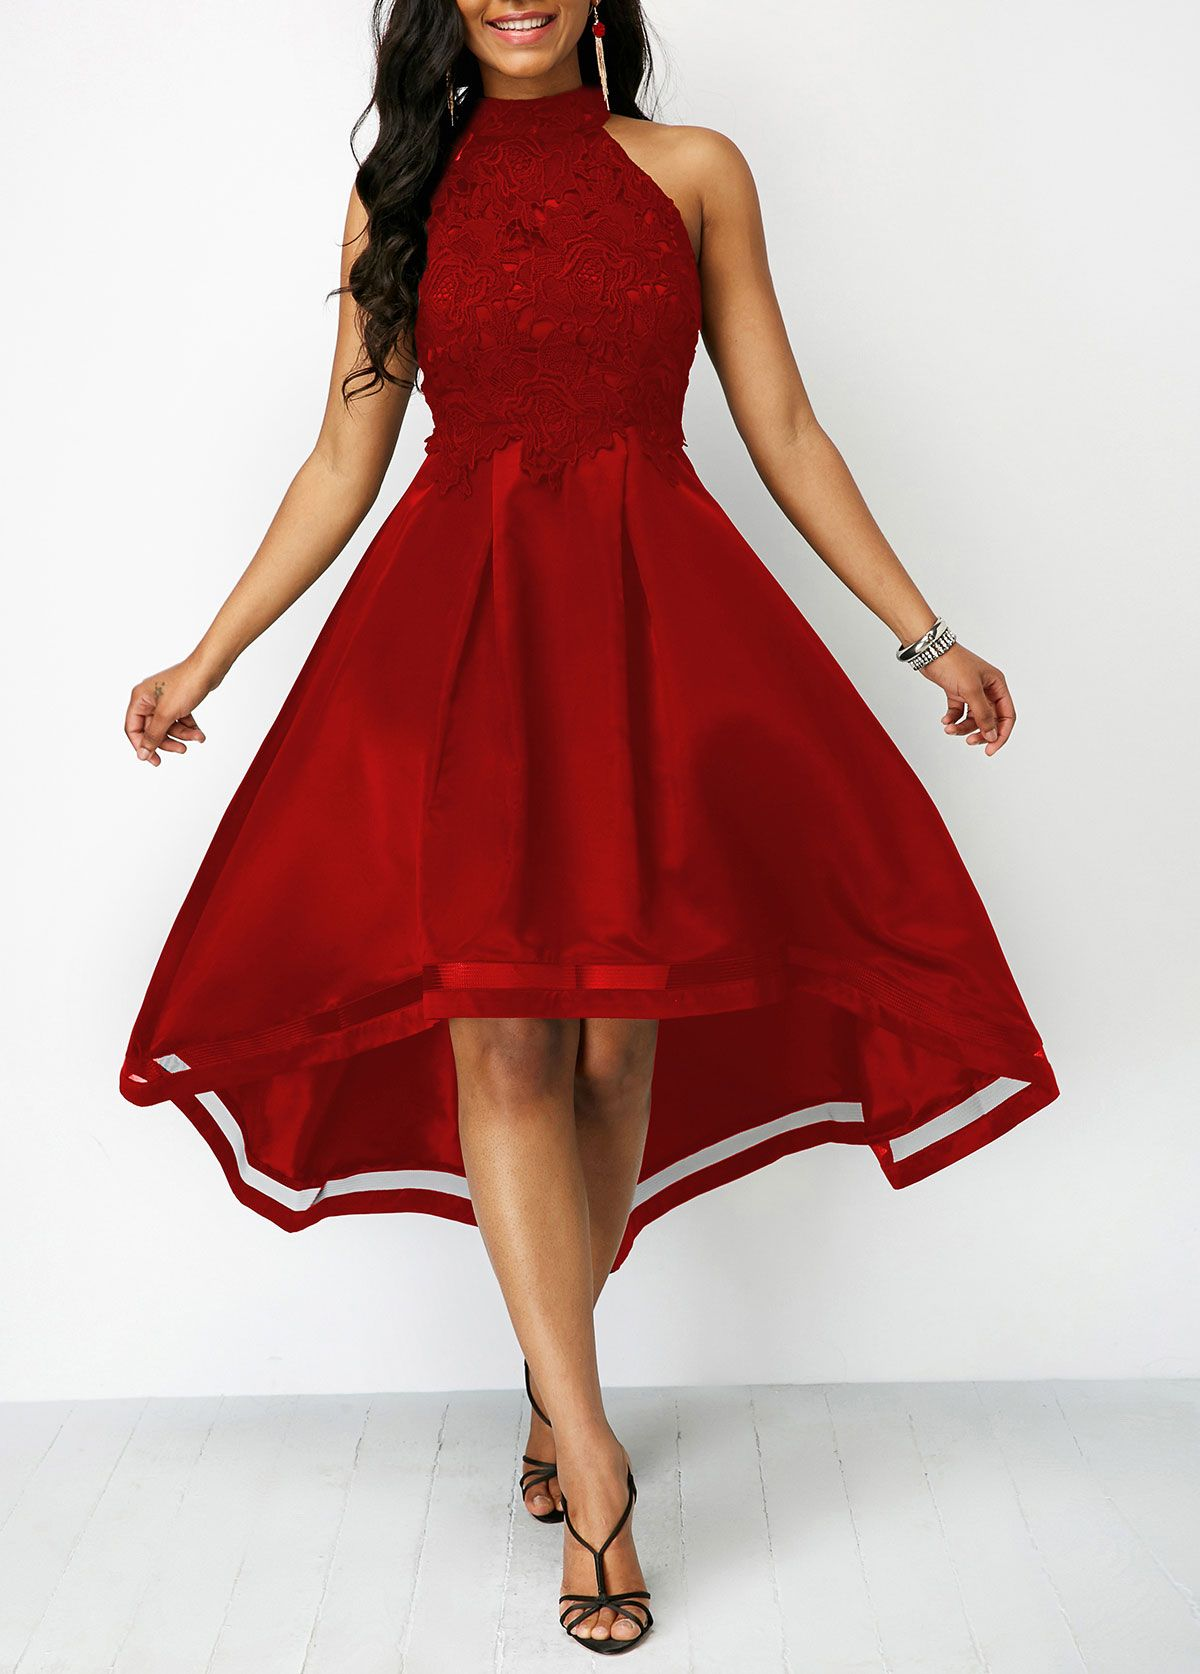 Lace Panel Wine Red Sleeveless High Low Dress Rosewe Com Usd 44 98 In 2021 Red High Low Dress Womens Dresses Casual Dresses [ 1674 x 1200 Pixel ]